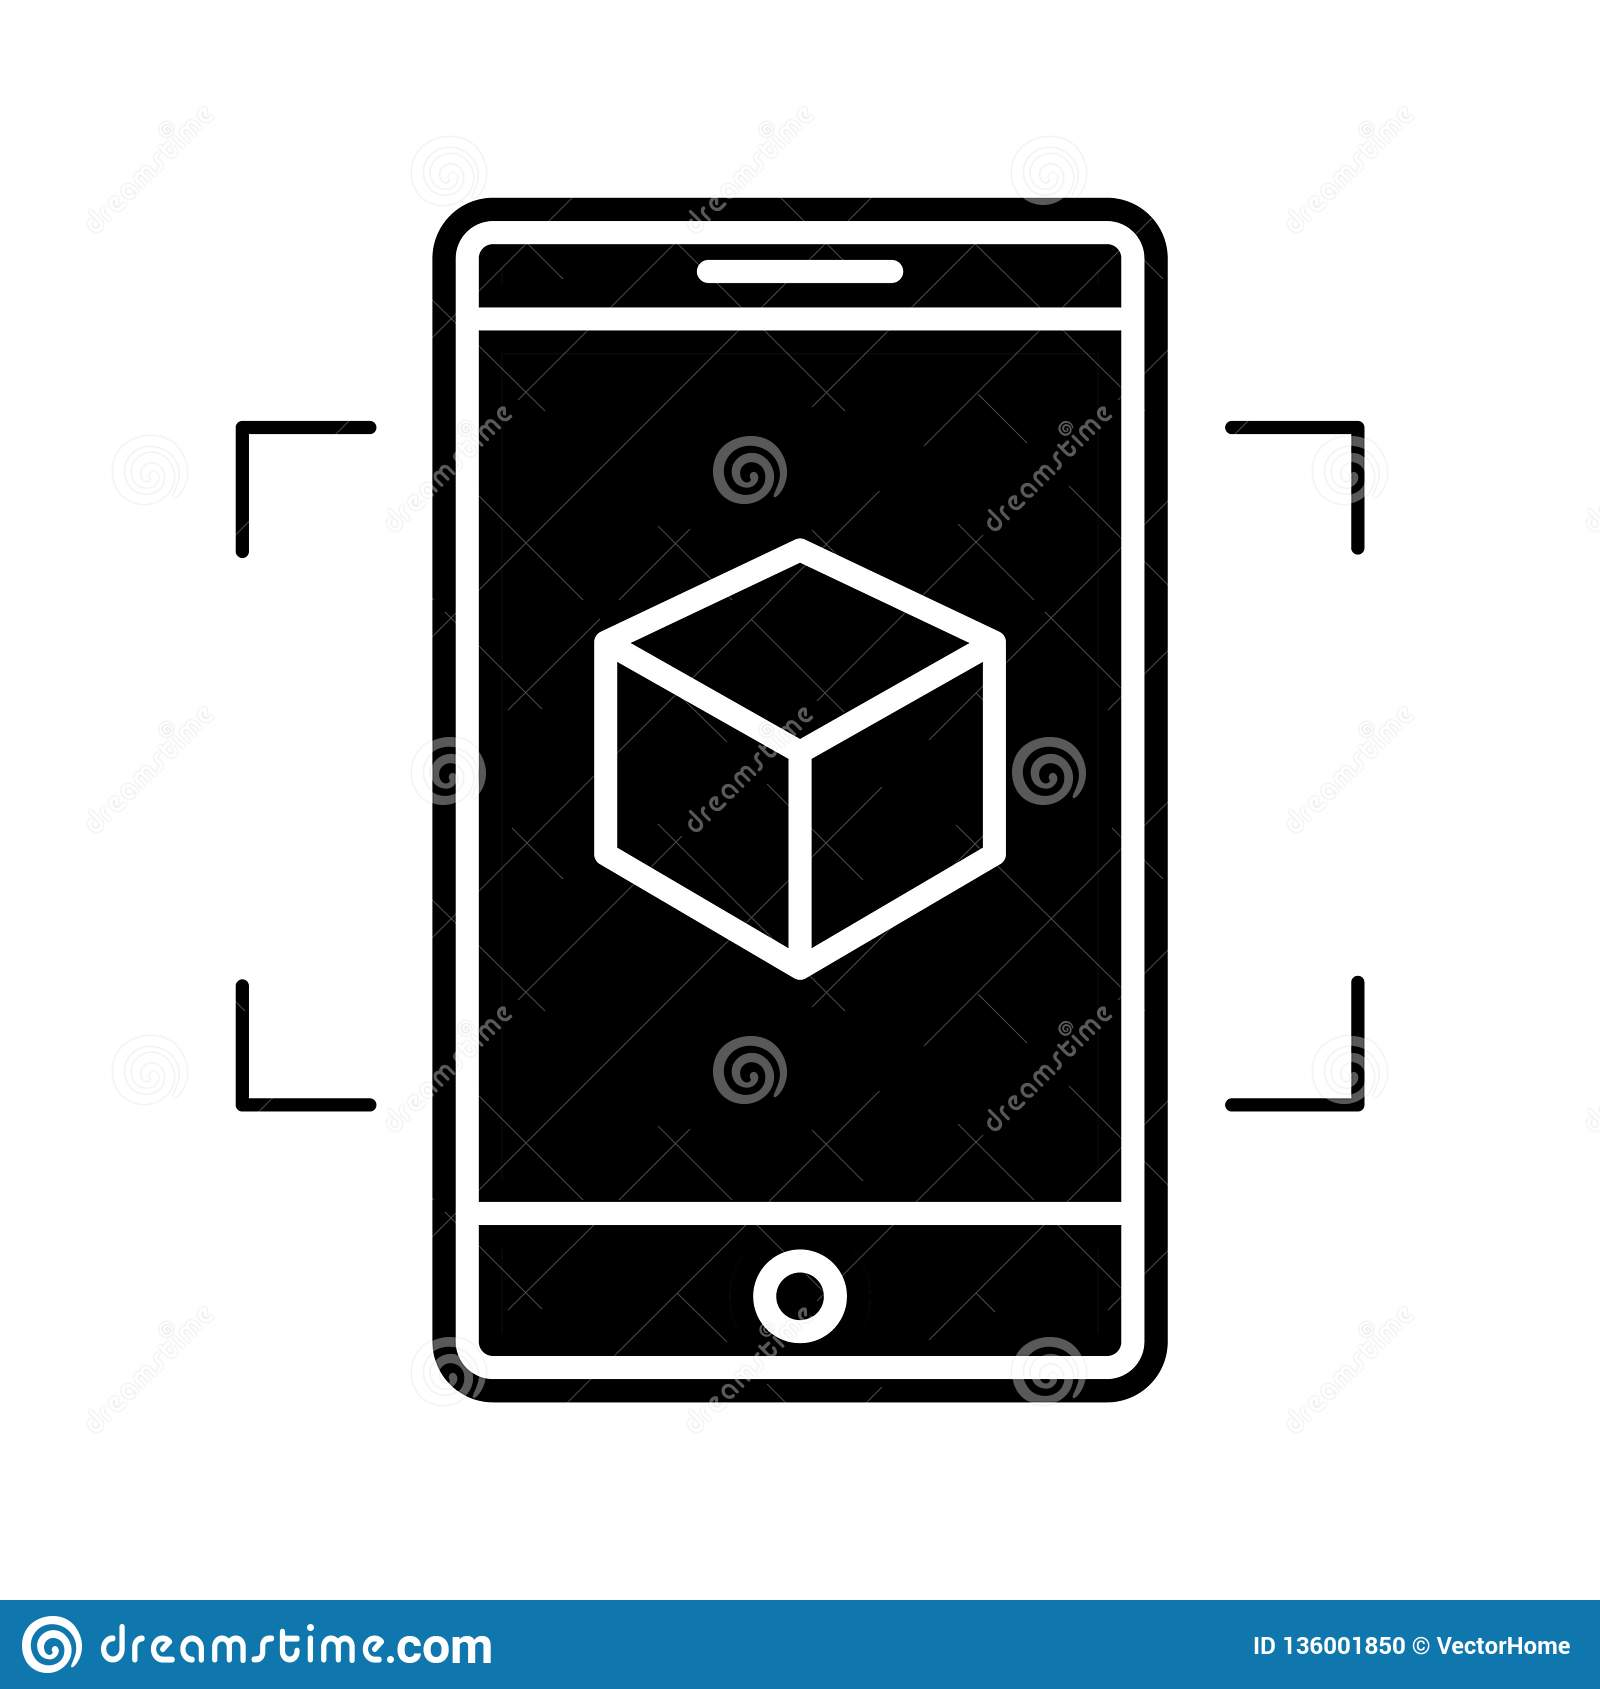 Augmented reality icon, vector illustration